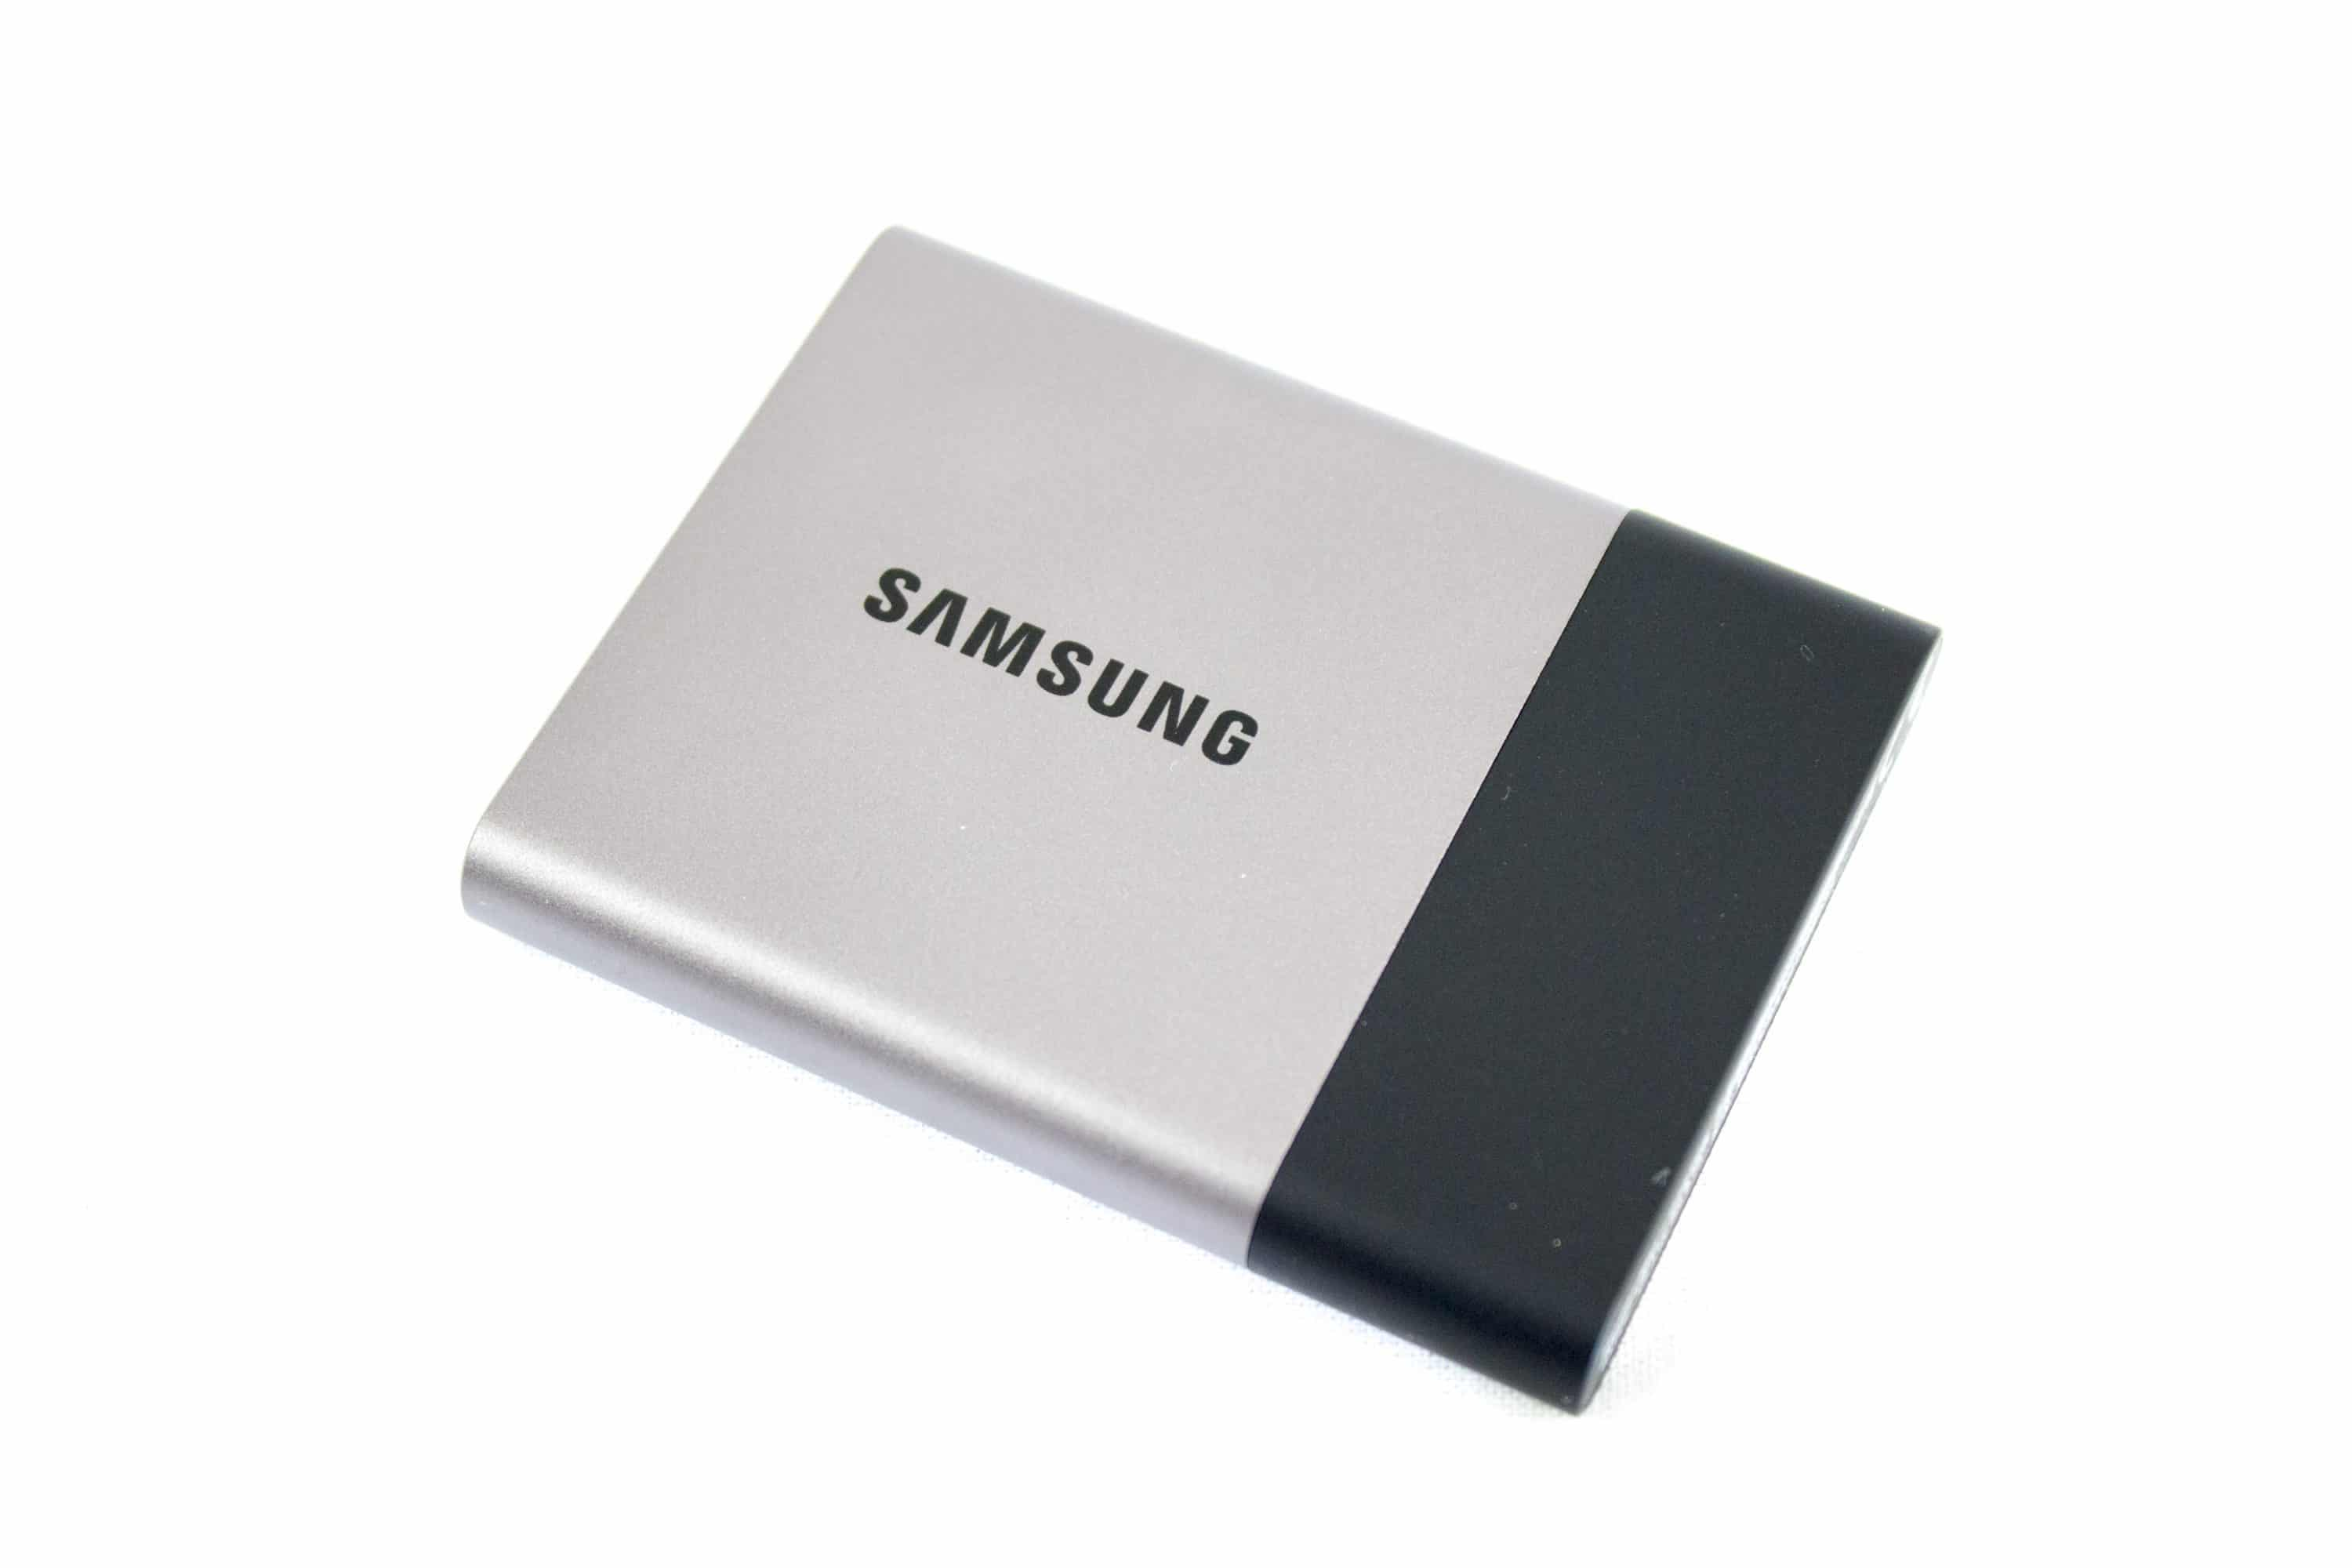 Photo of Samsung Portable SSD T3 With 2 TB In Review